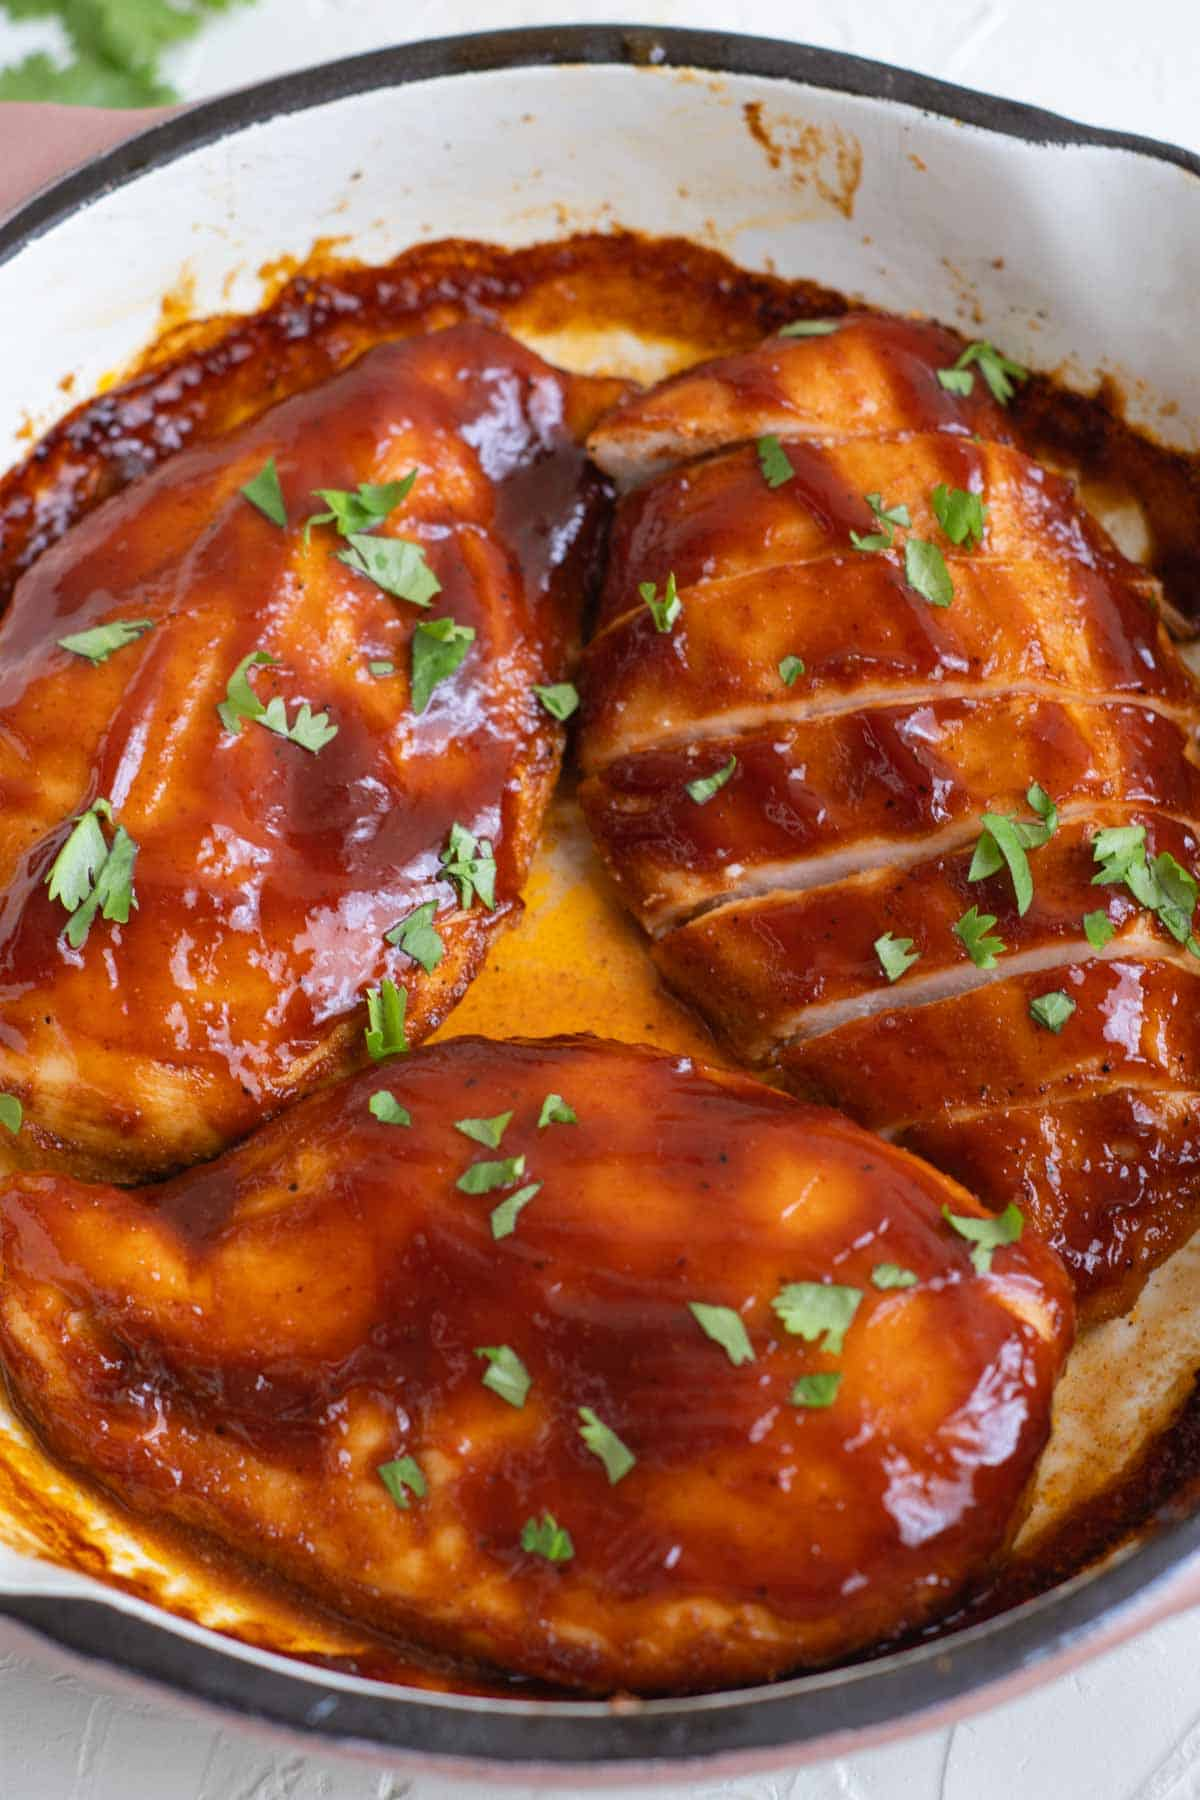 three baked bbq chicken breasts in a skillet with one sliced